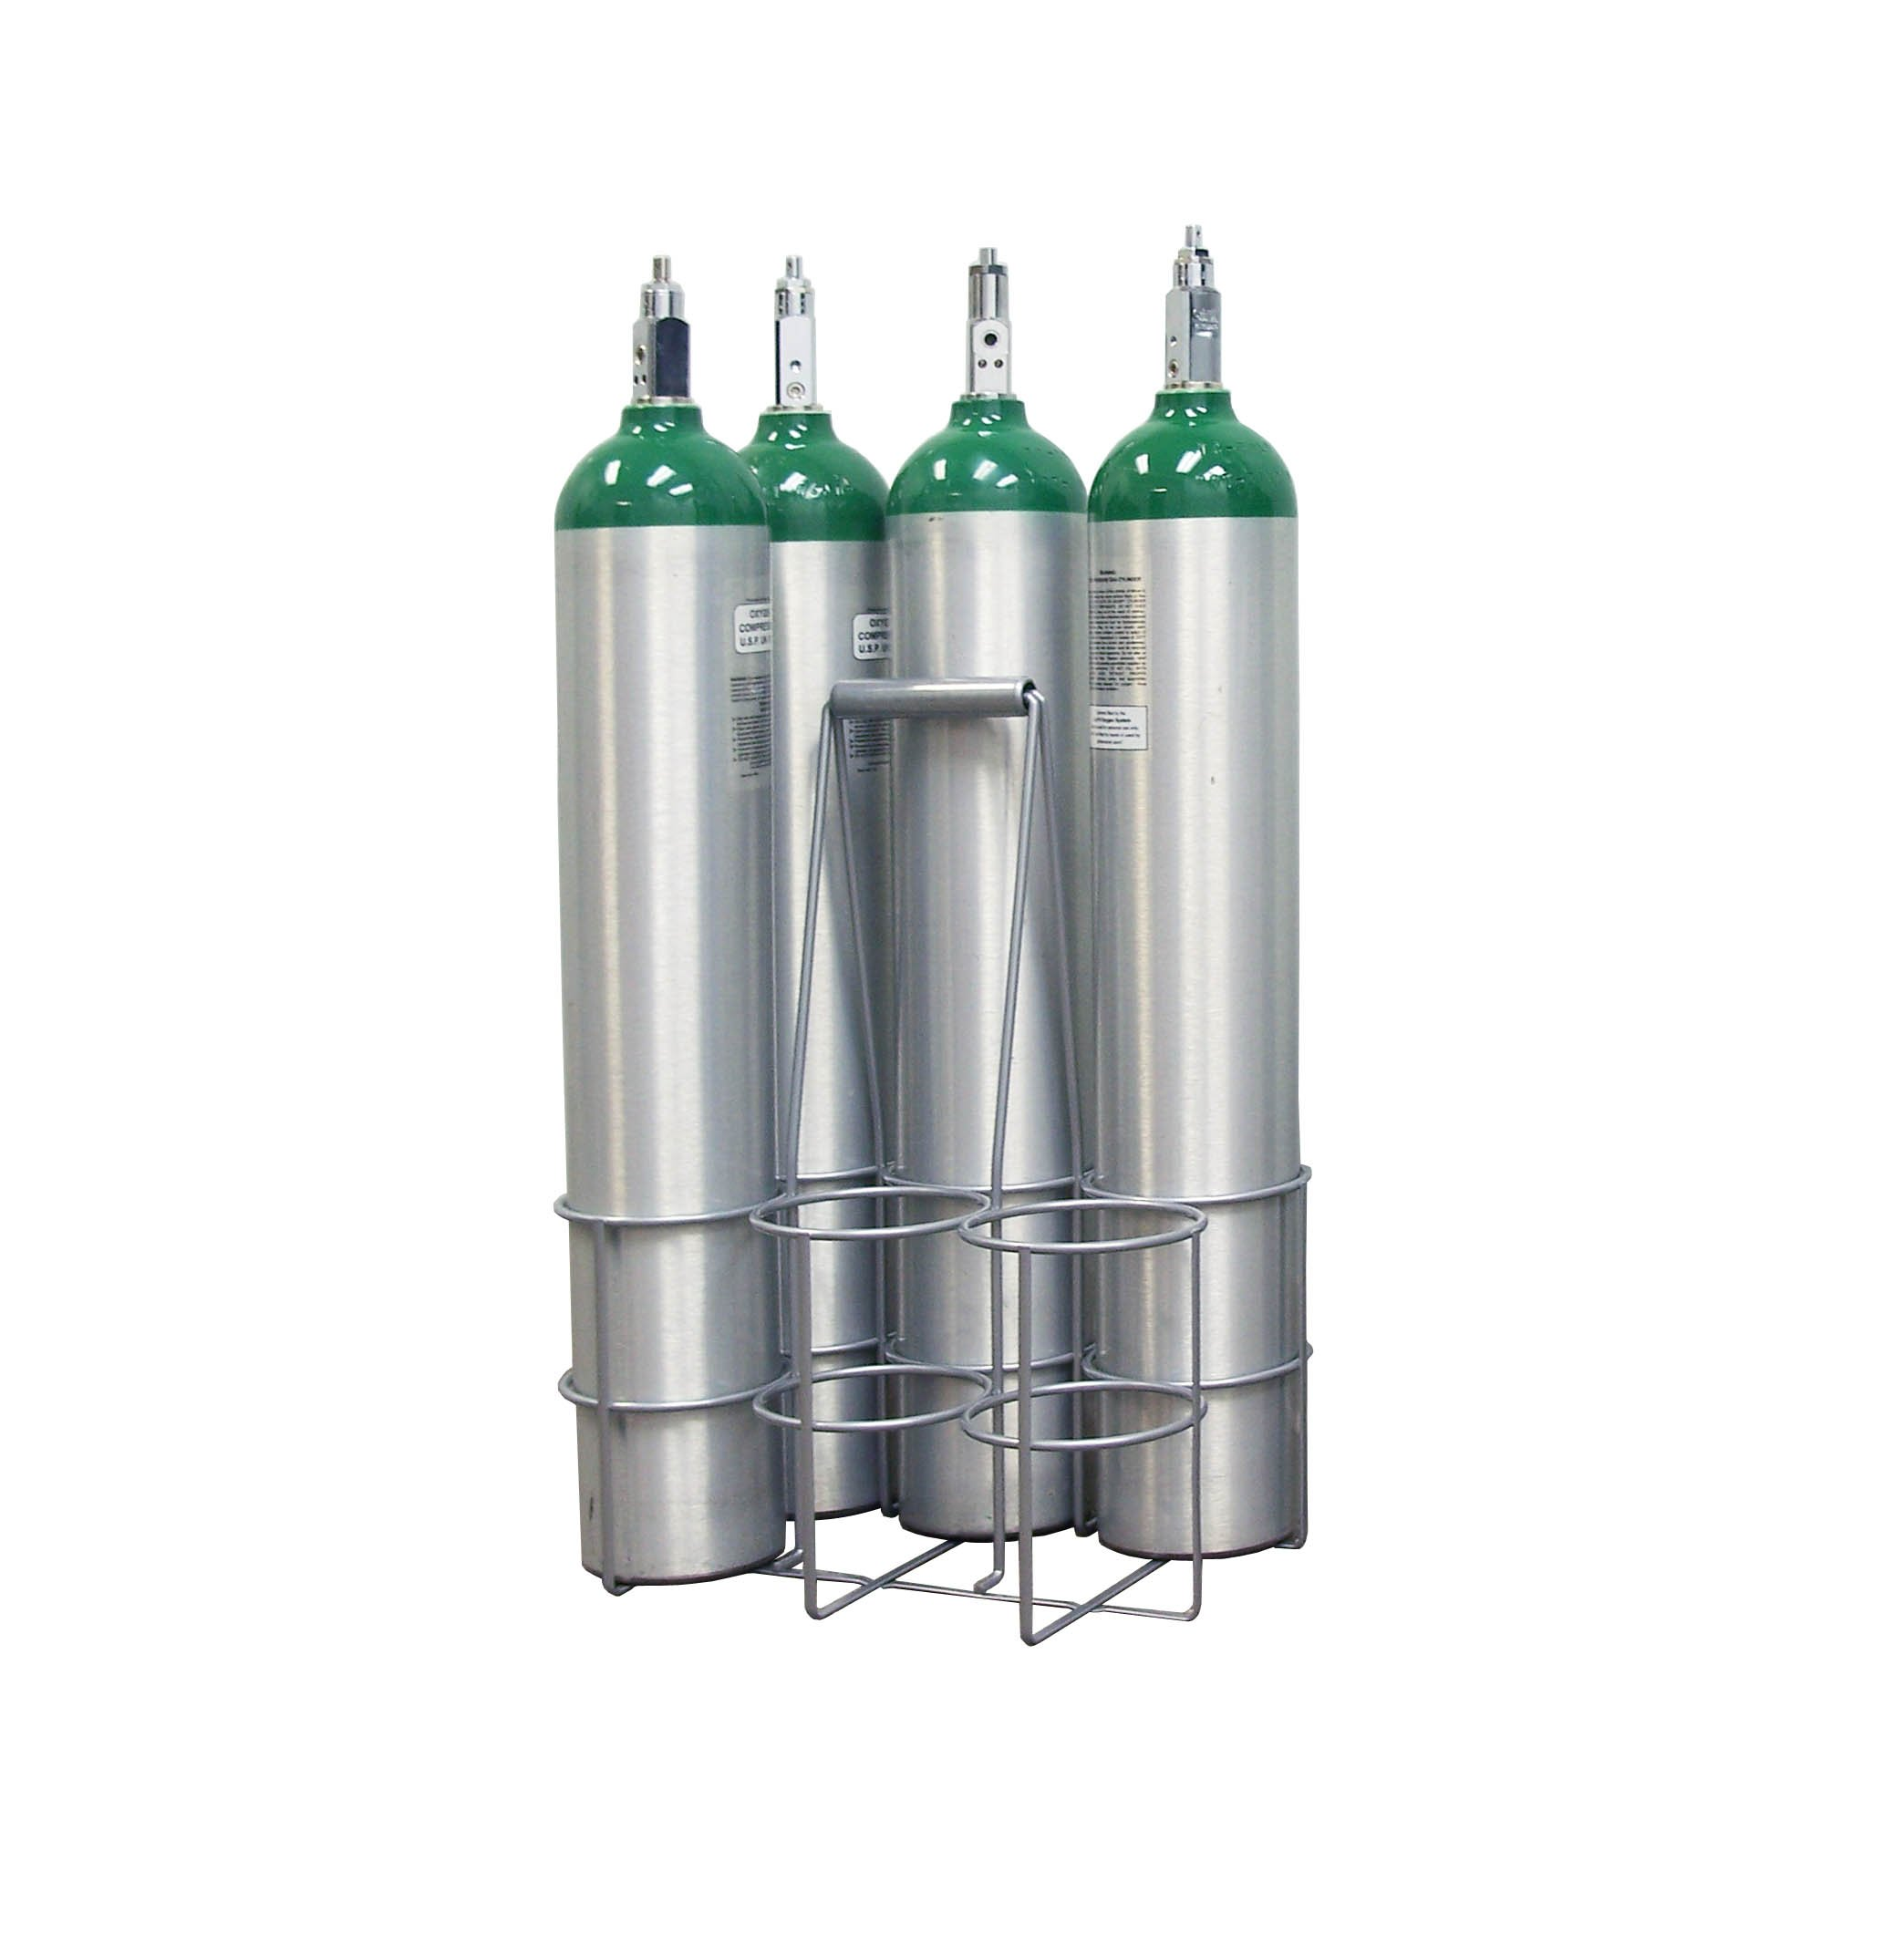 Long Handle Milkman Style Metal Carrier for D/E/M9 Oxygen Cylinders, holds 6 cylinders by Responsive Respiratory